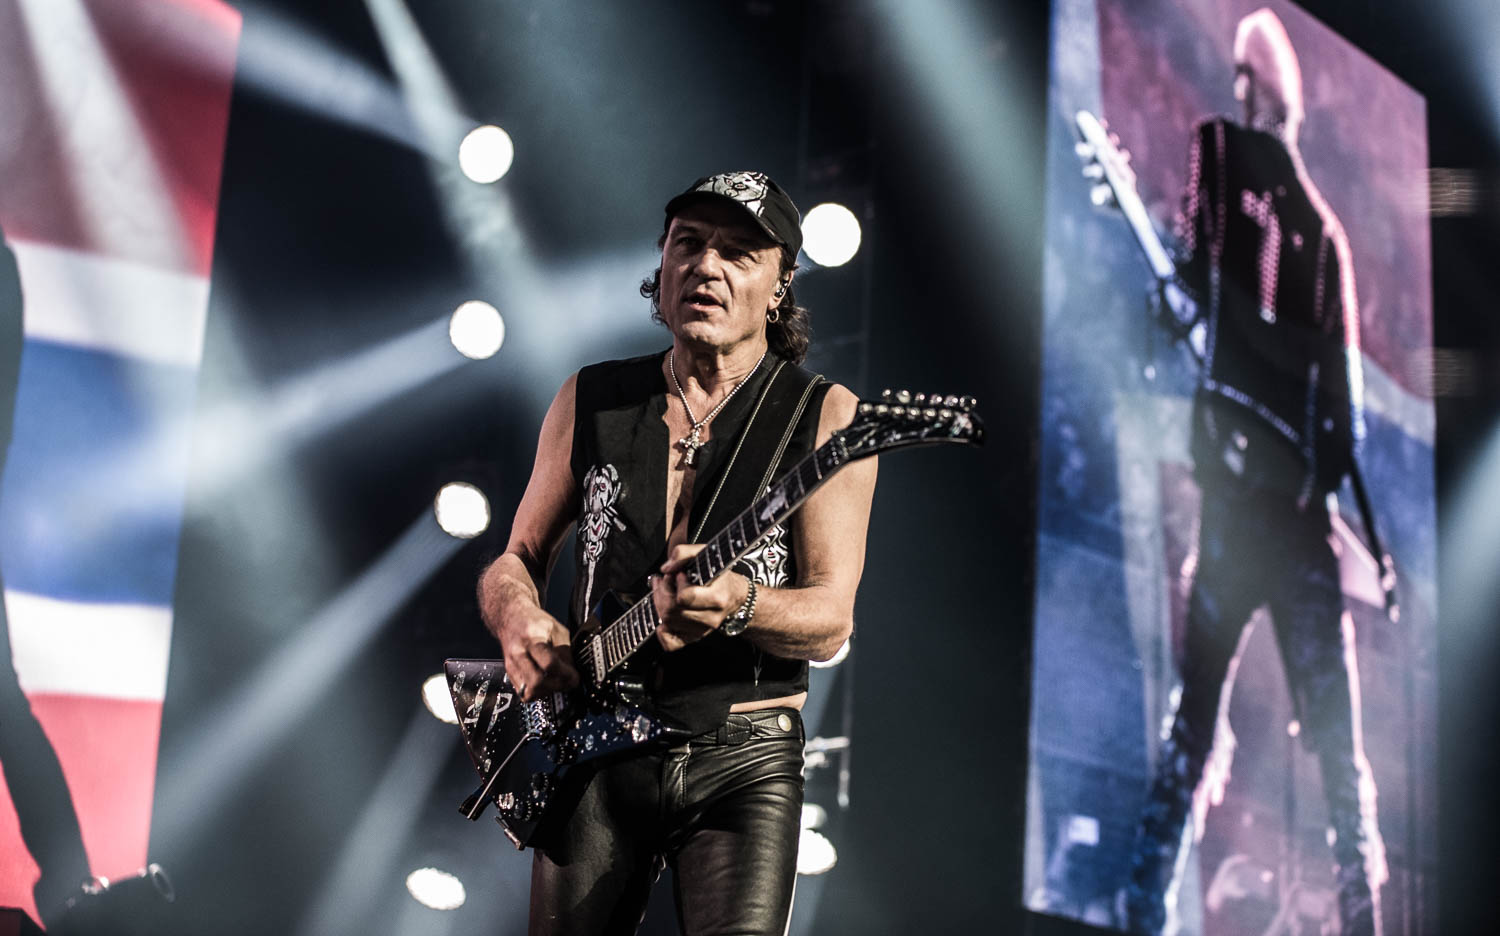 11222017_Scorpions@OS_Willy_Larsen_Photography_dh (17 of 41)